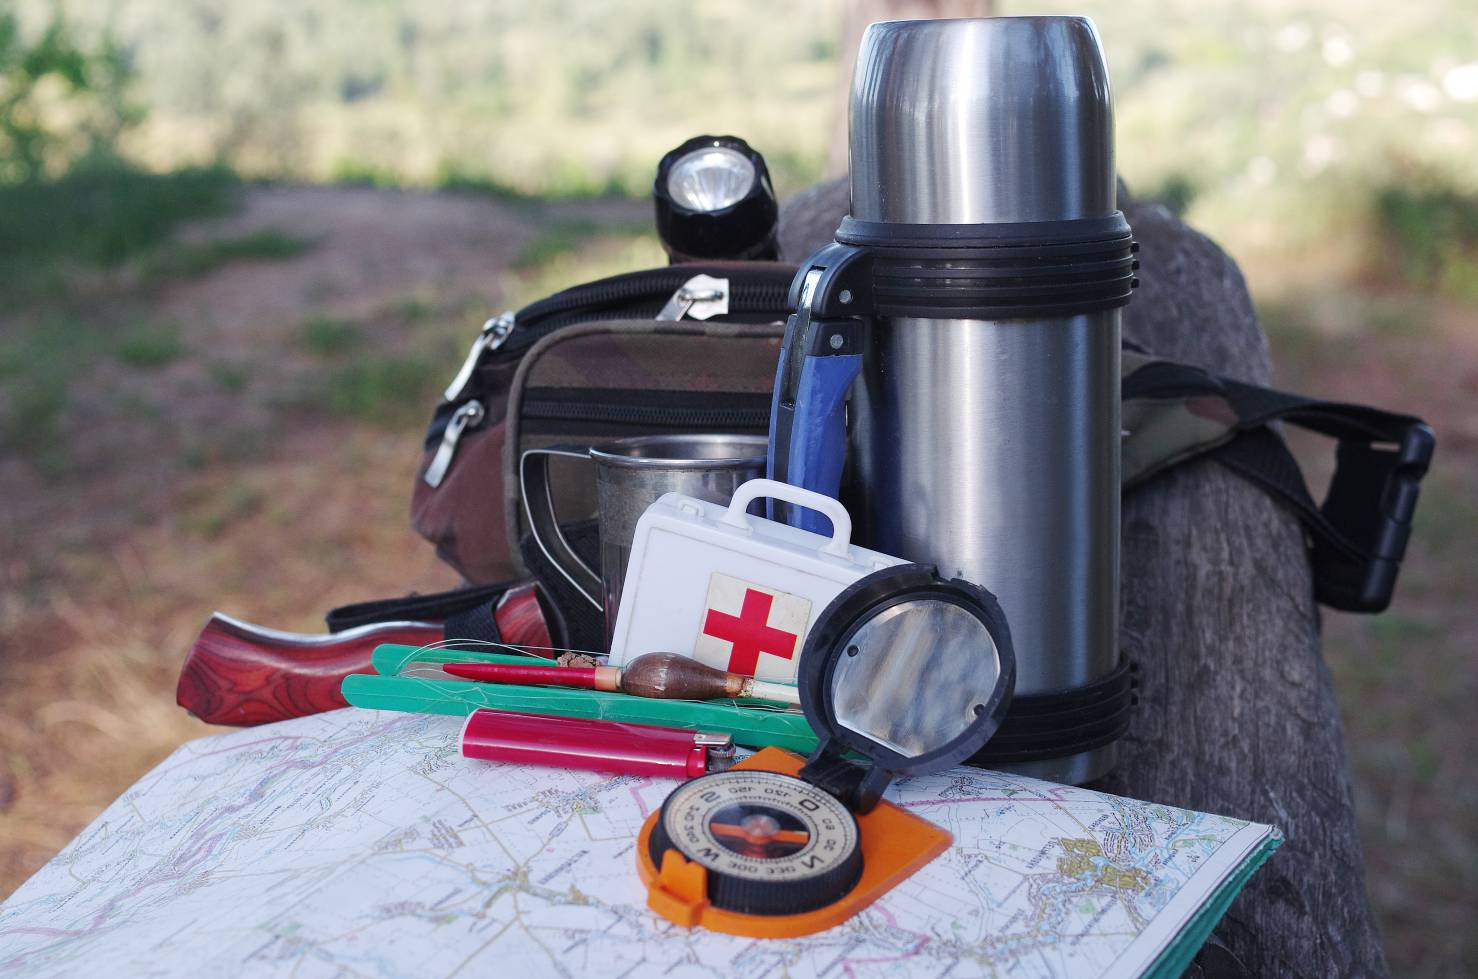 A compass, thermos, medical kit, flashlight, and knife on top of a map in the woods.